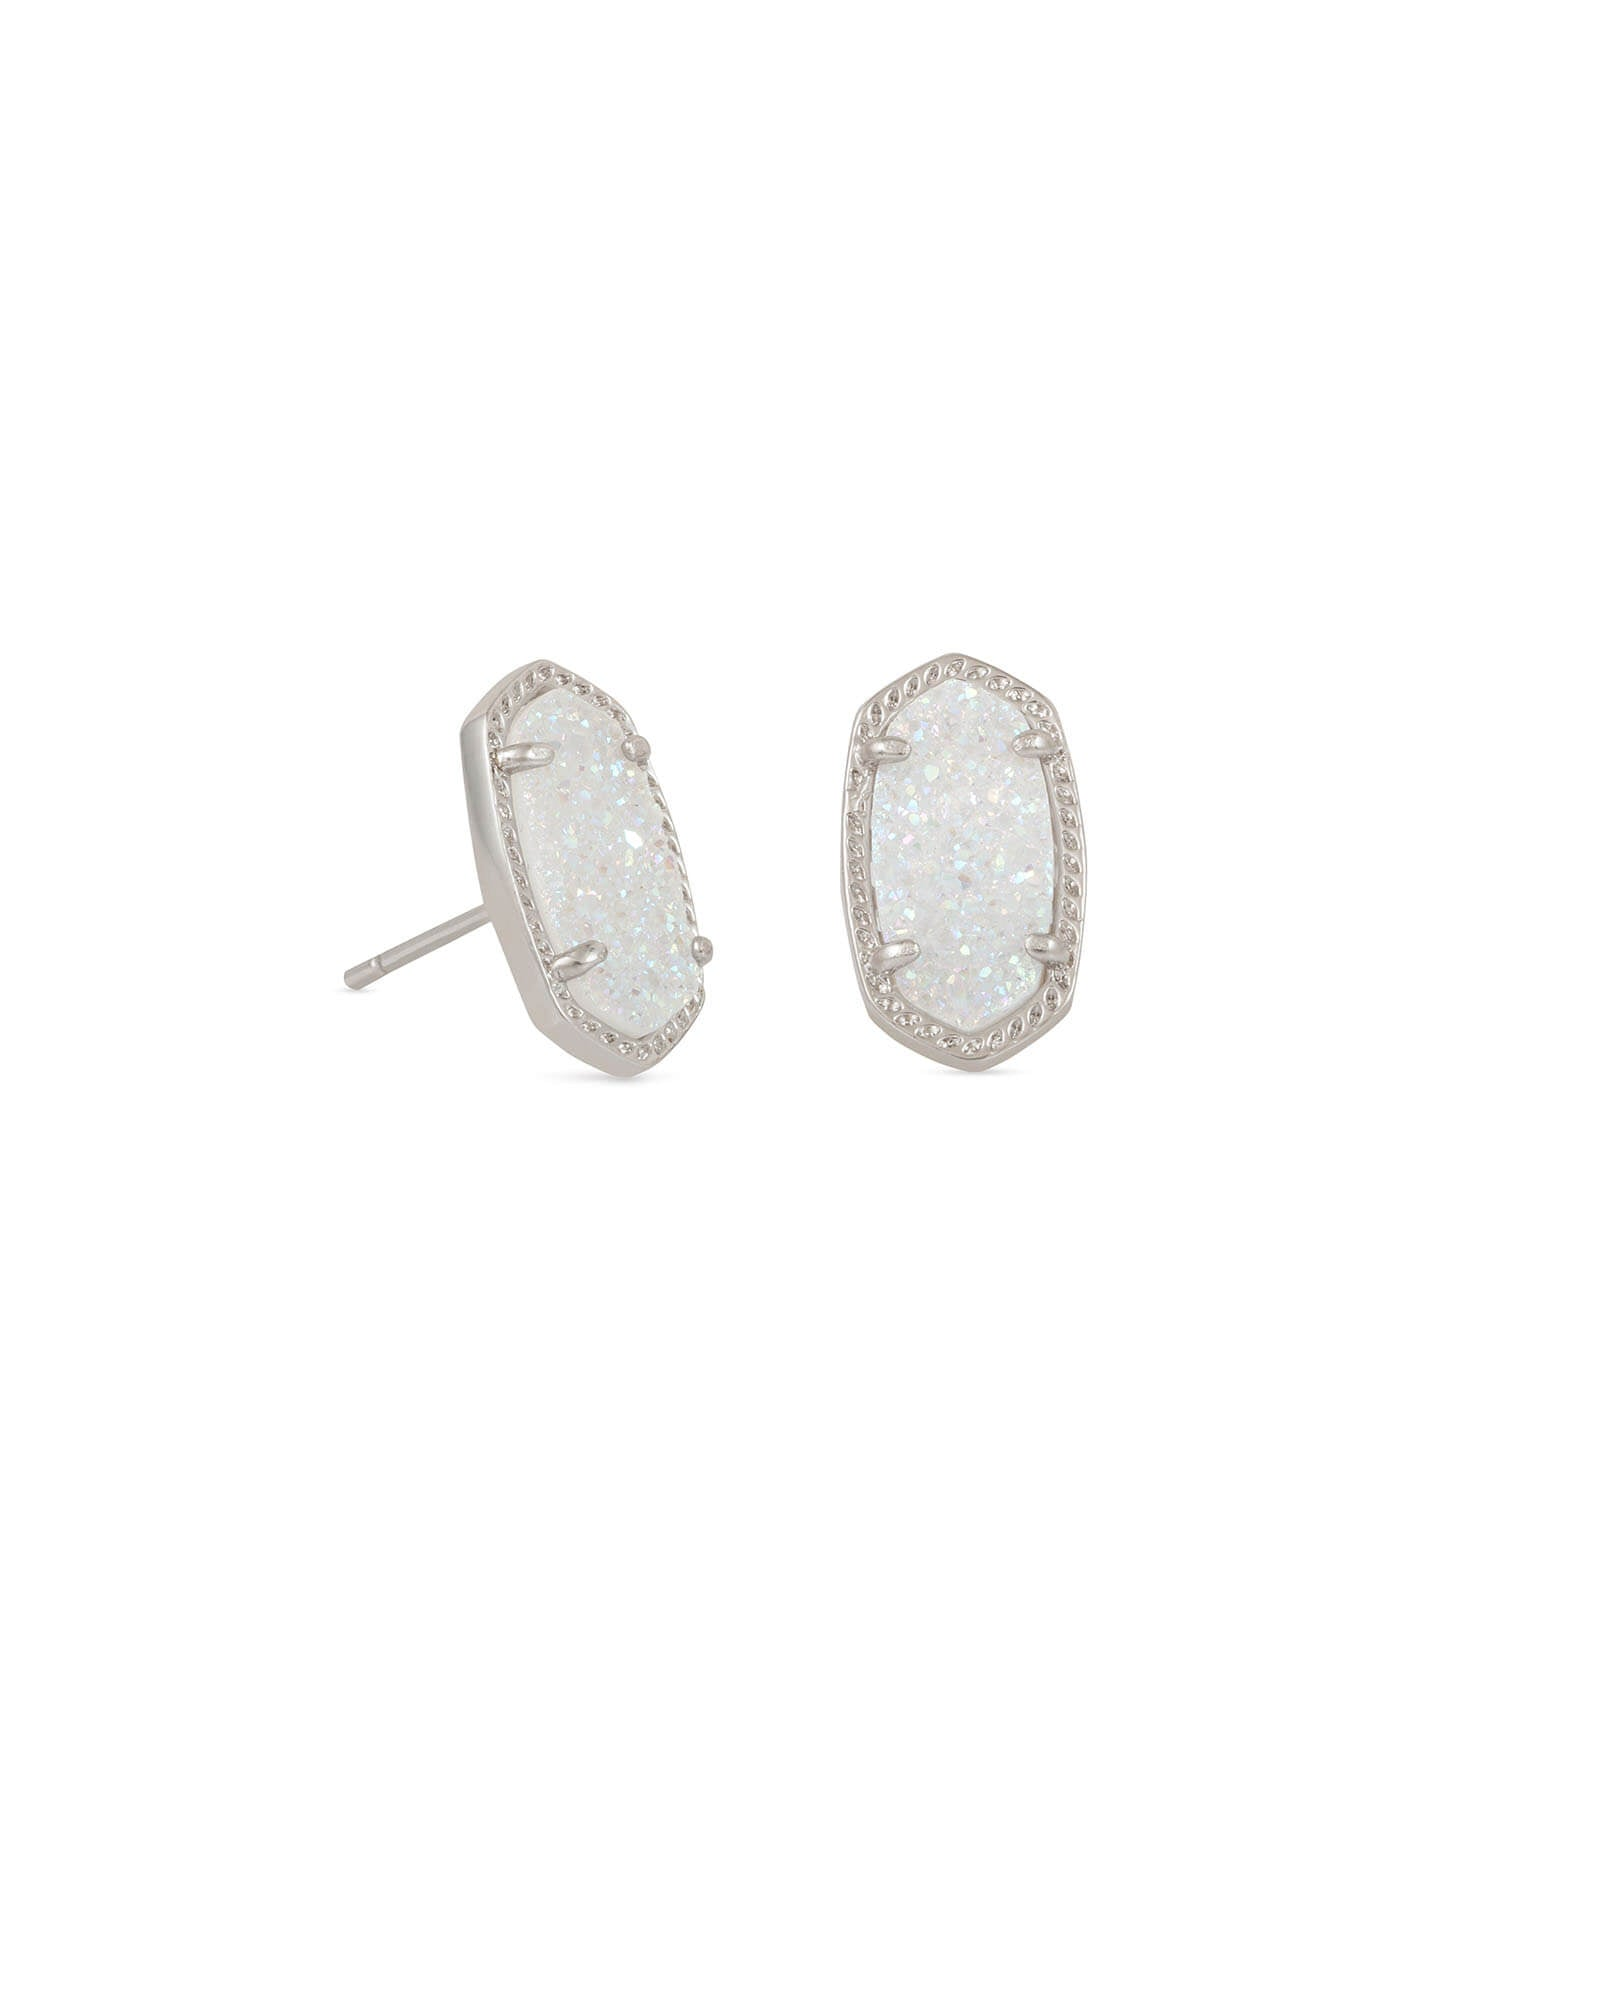 Hello Lovely Summer Sparkle Silver Flower Shaped and Crystal Earrings on Round Card Set of 2 Katie Loxton